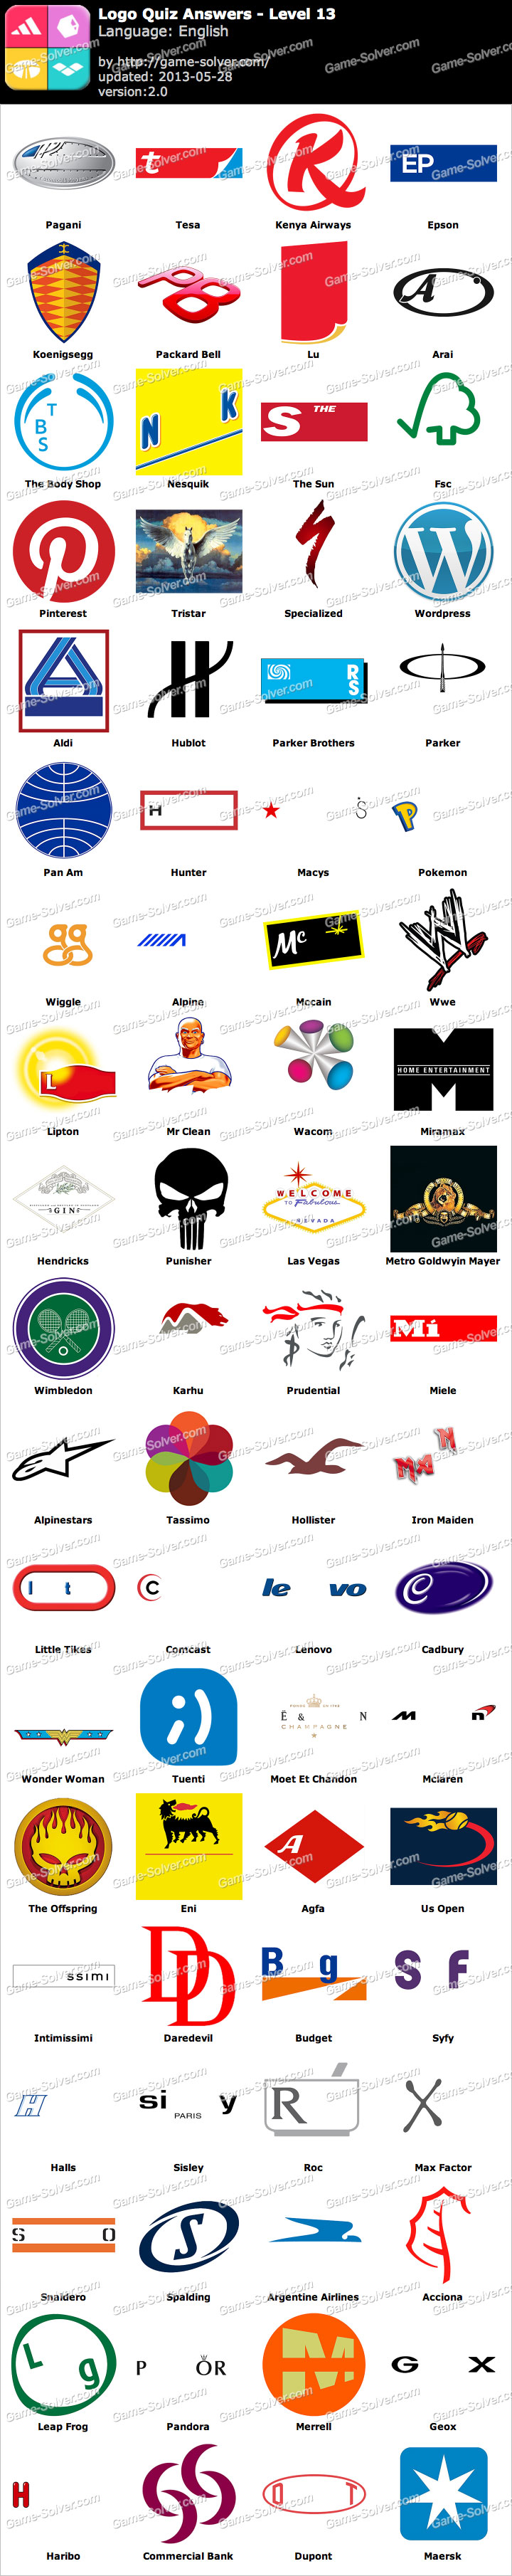 Logo Quiz Level 13